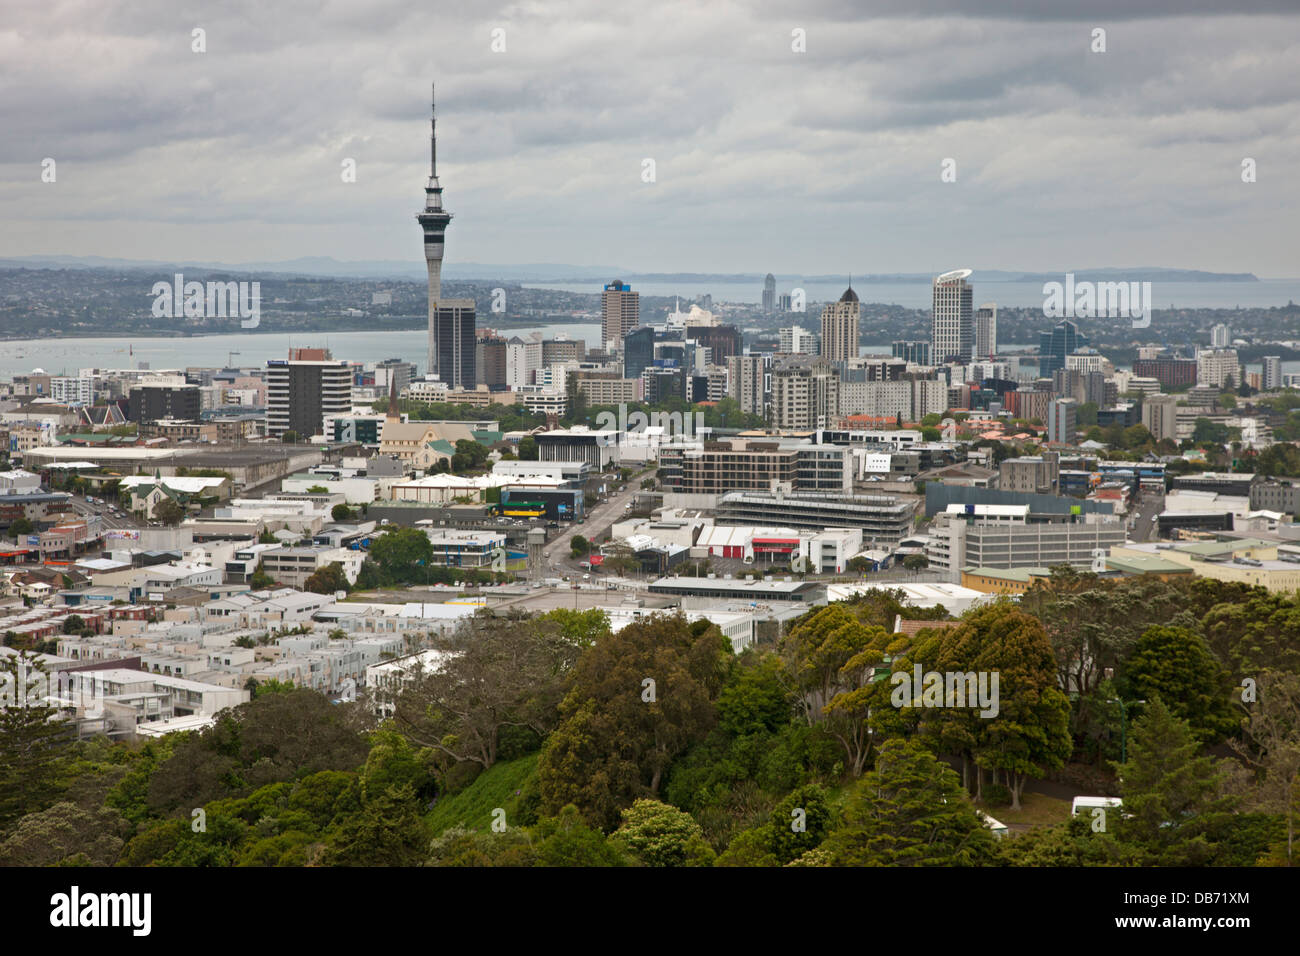 South Pacific, New Zealand, North Island, Auckland. Overview of the city. - Stock Image